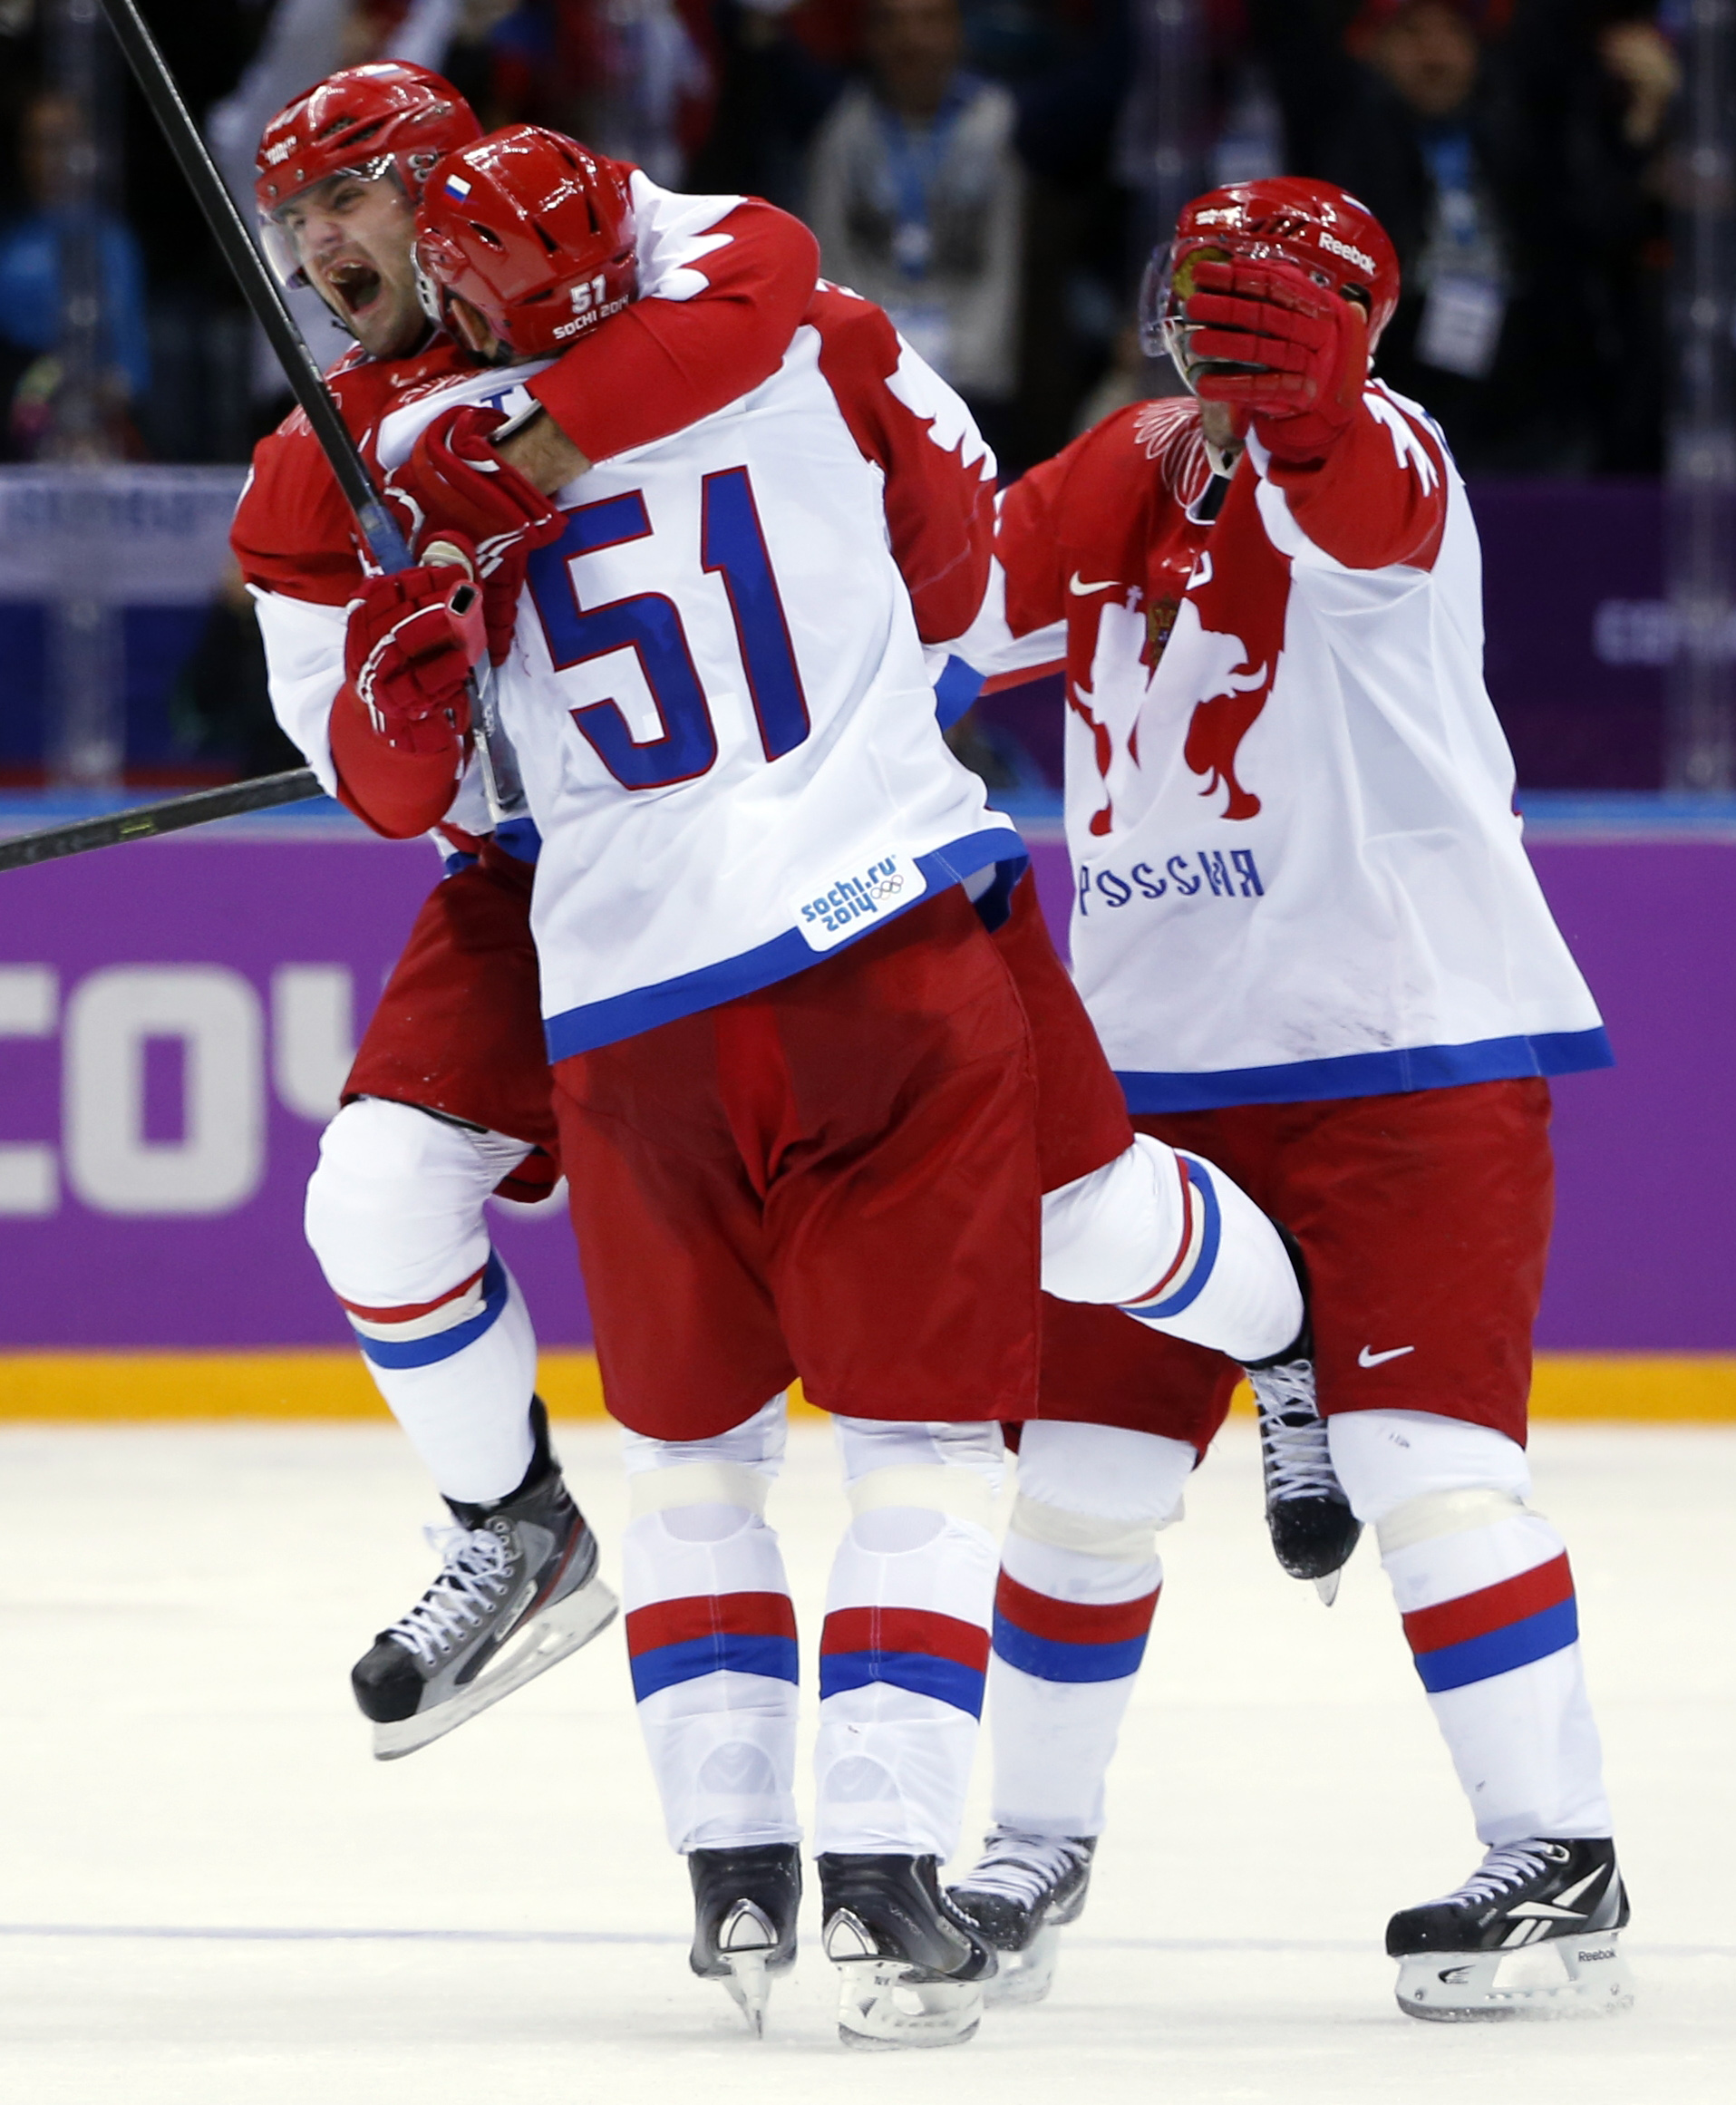 Russia forward Alexander Radulov leaps into the arms of Russia defenseman after a third period goal against the USA during a men's ice hockey game at the 2014 Winter Olympics, Saturday, Feb. 15, 2014, in Sochi, Russia. (AP Photo/Julio Cortez)